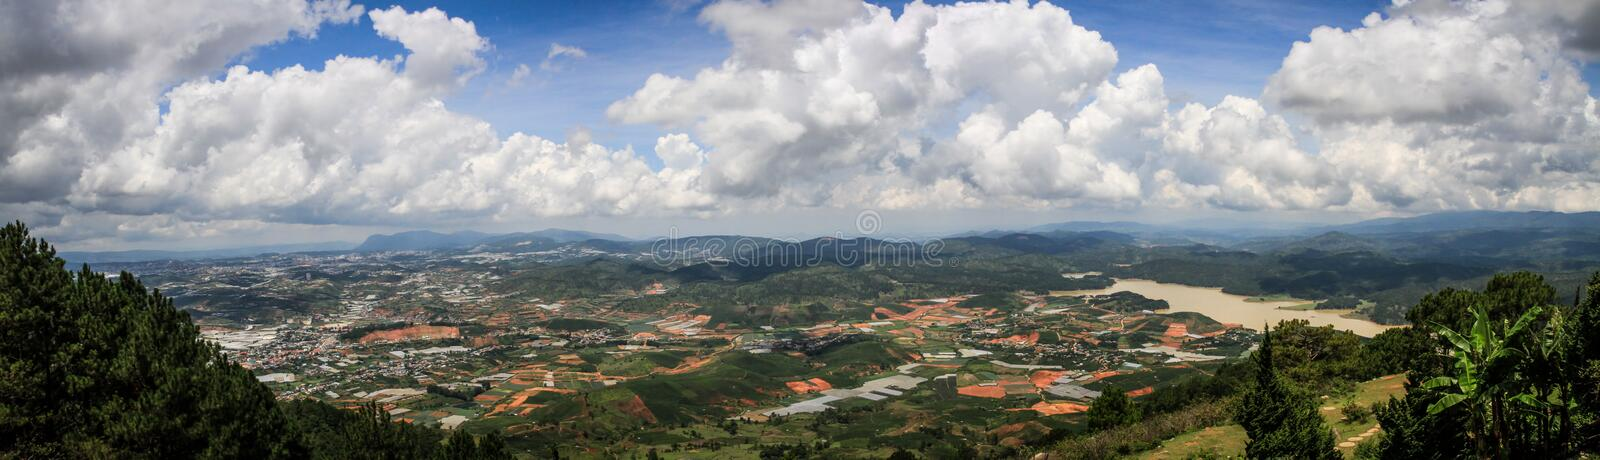 Panorama on the surrounding countryside from the Lang Biang Mountain, Lam Province, Vietnam stock images